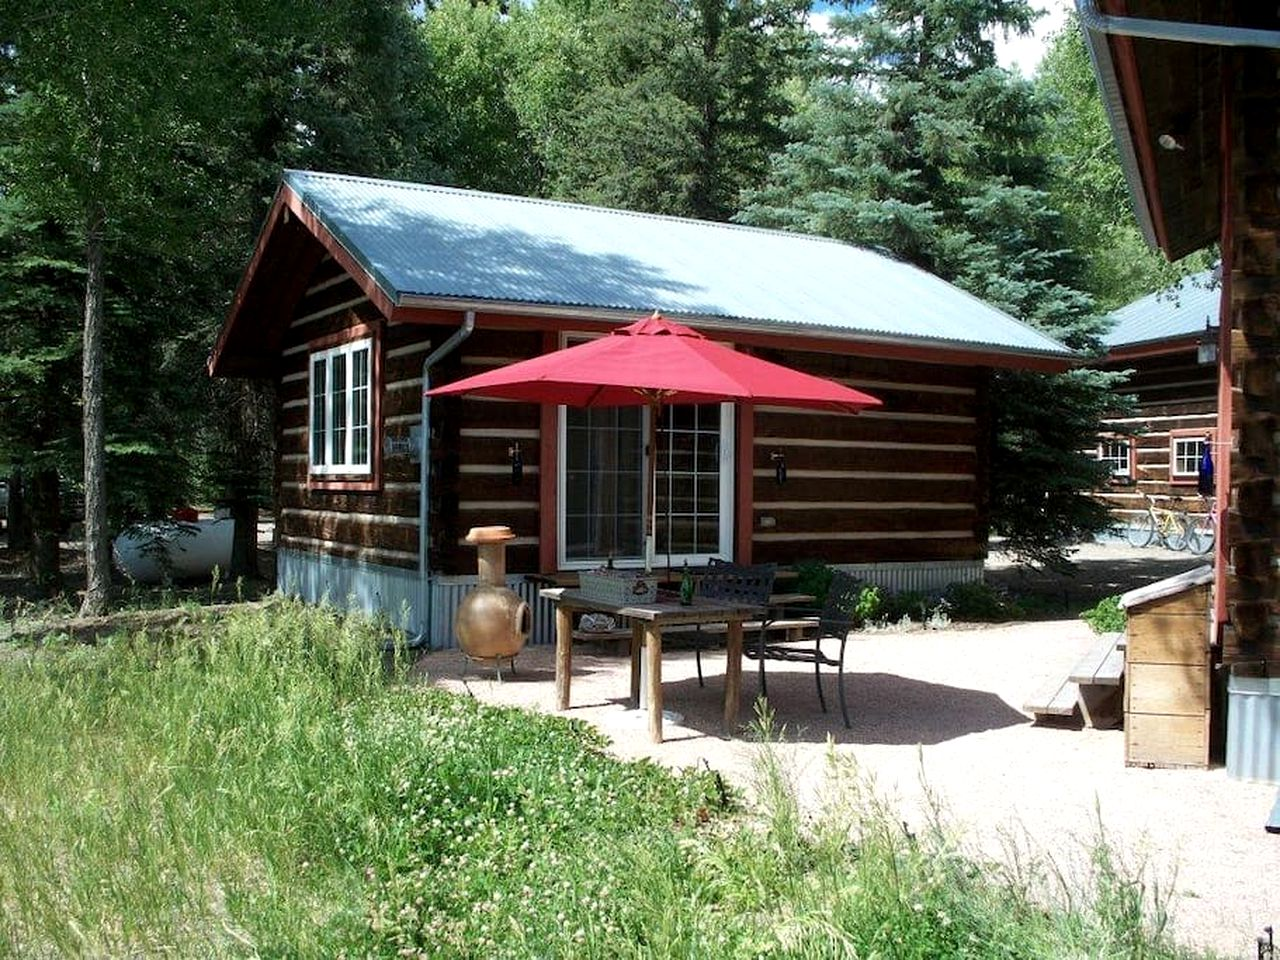 Cabins (South Fork, Colorado, United States)